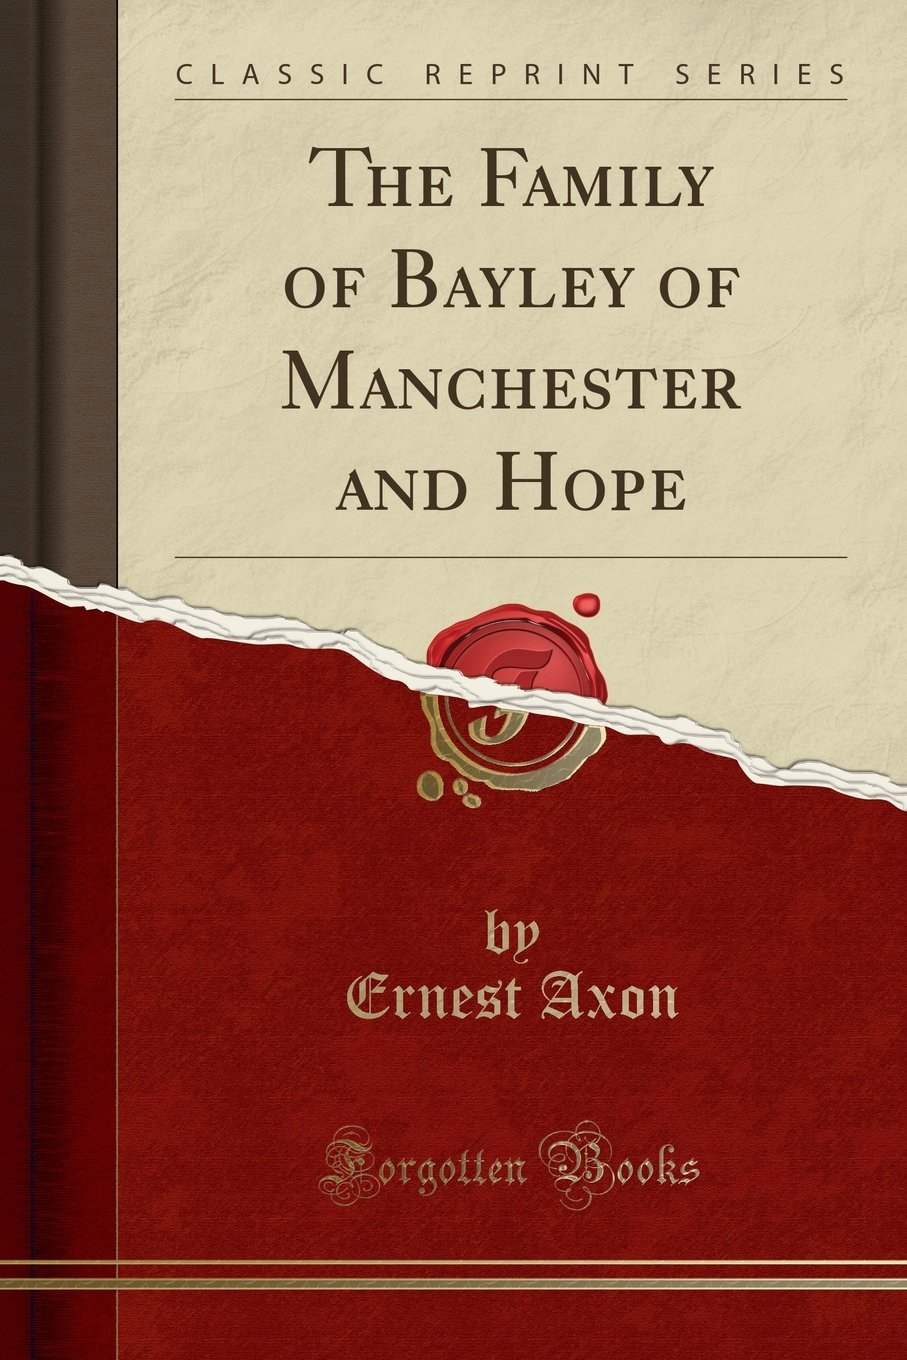 The Family of Bayley of Manchester and Hope (Classic Reprint